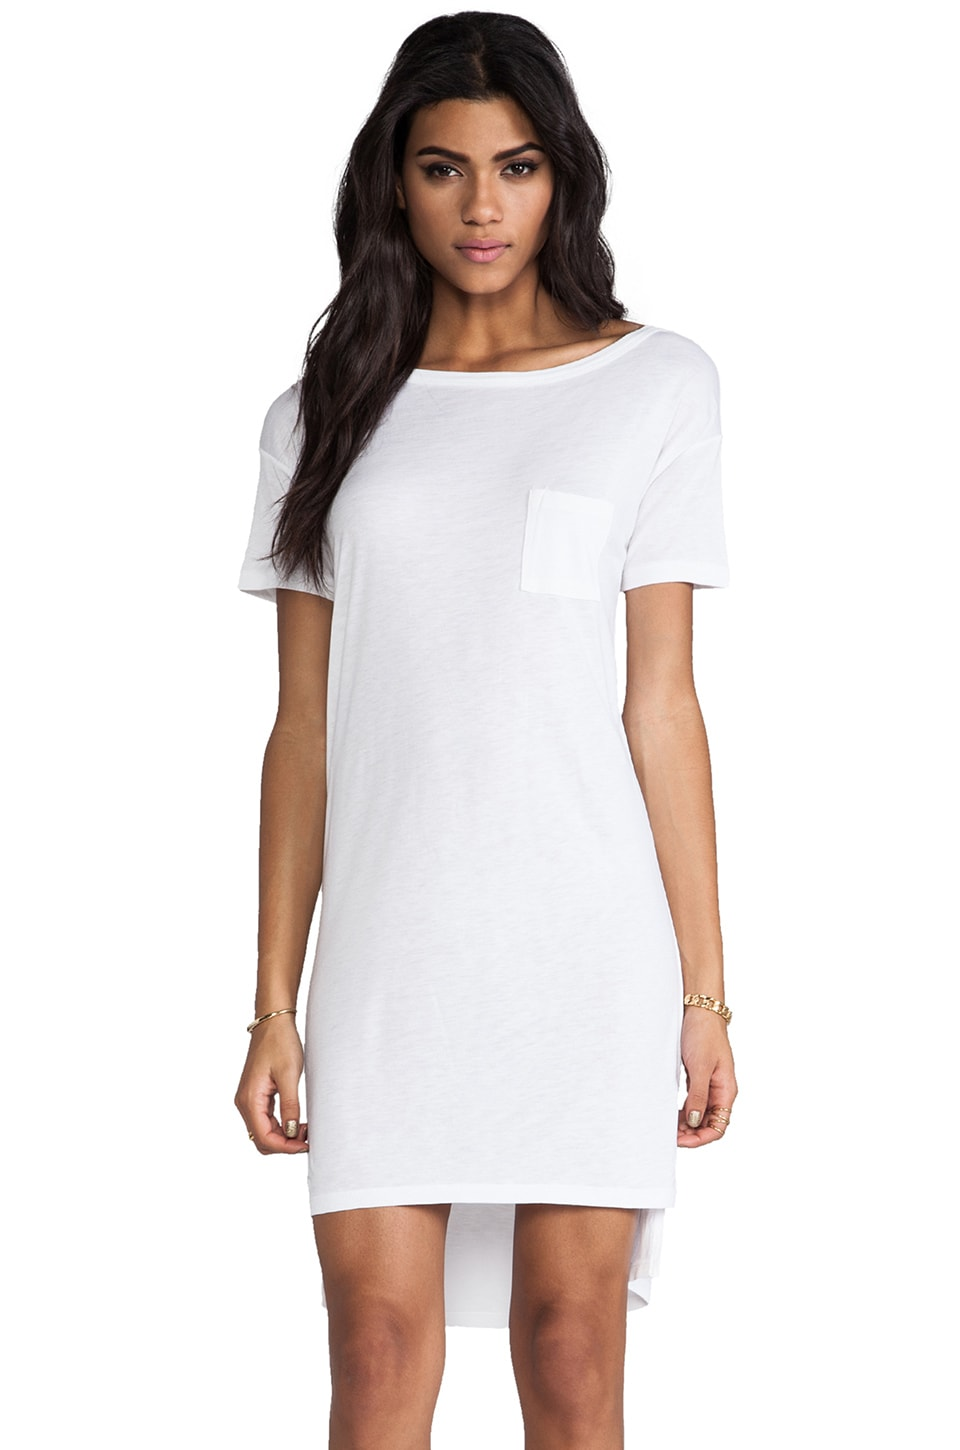 T by Alexander Wang Classic Boatneck Dress With Pocket in White